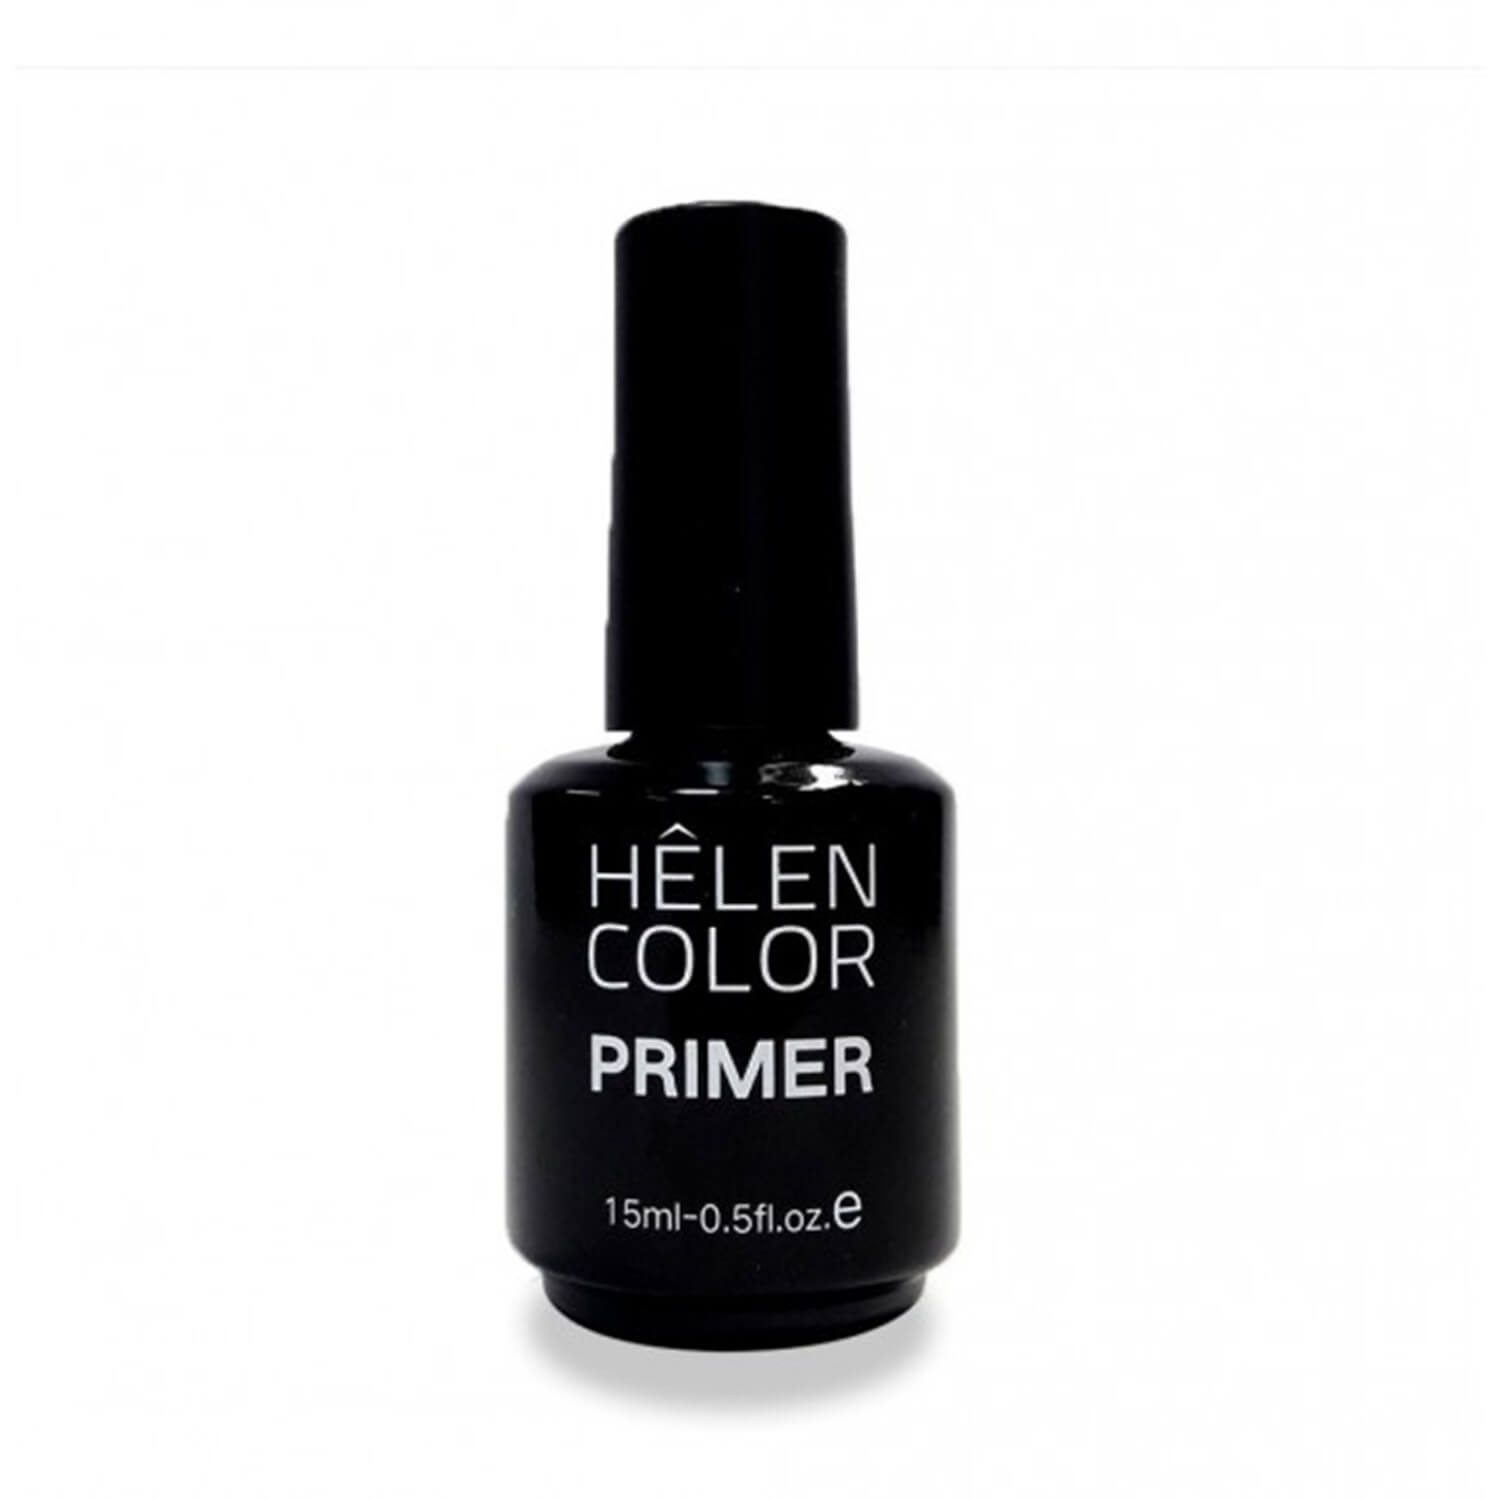 Primer 15ml - Hêlen Color